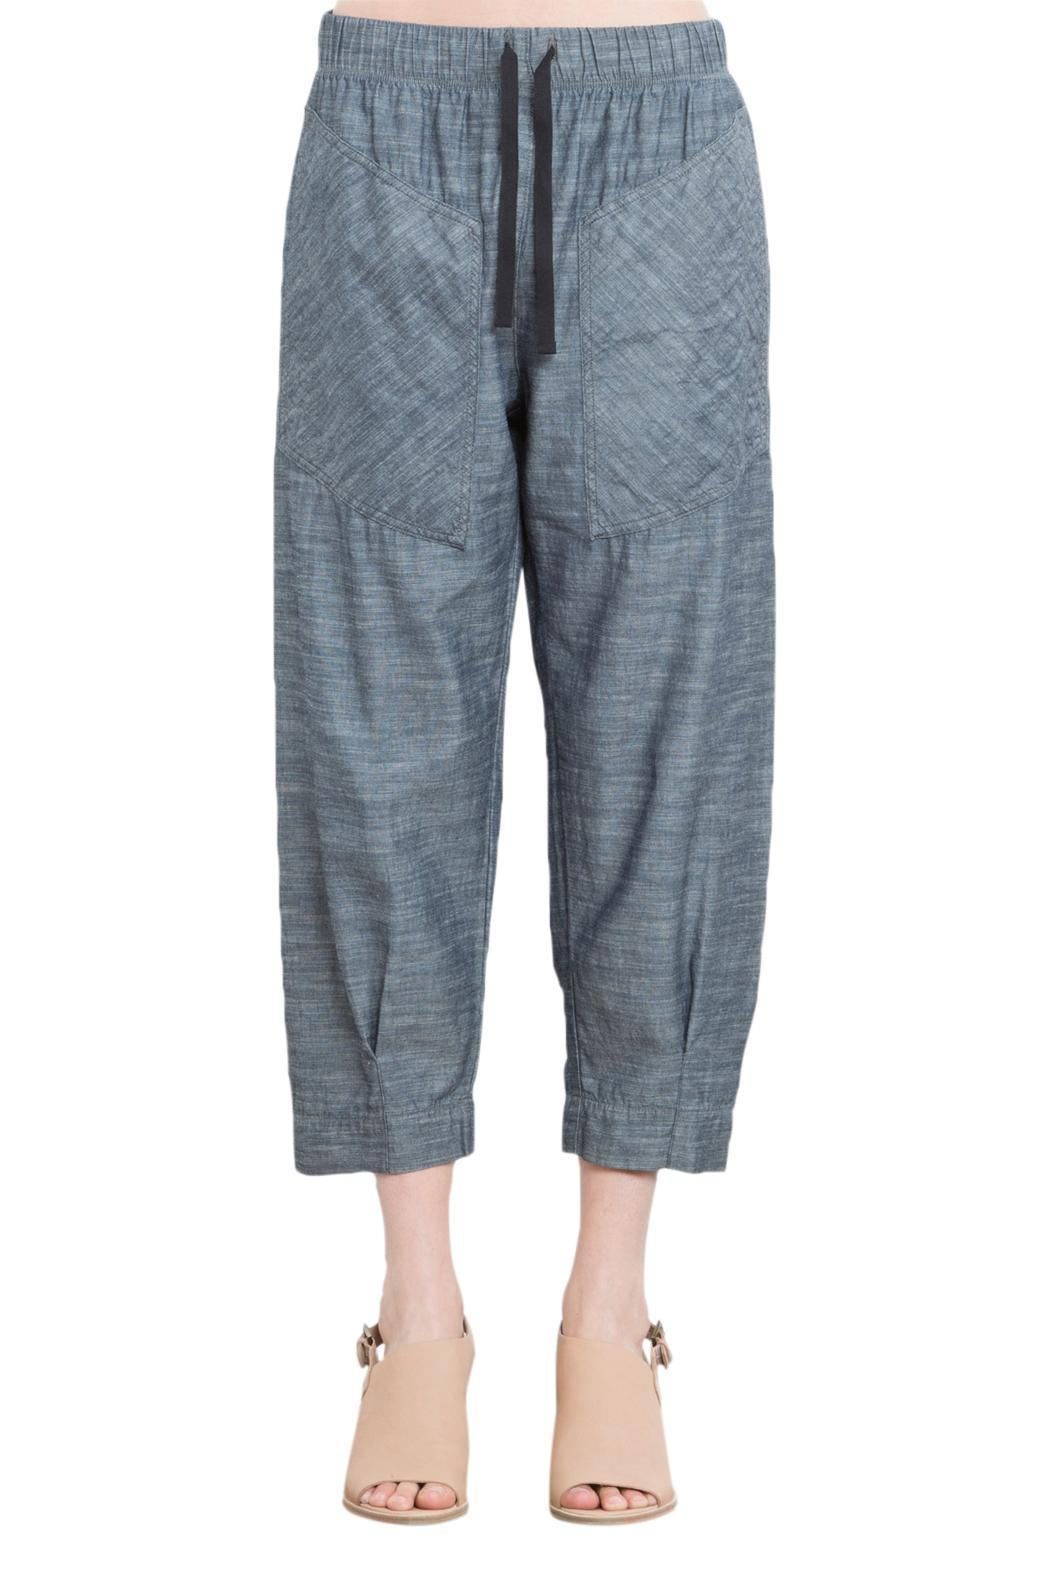 Prairie Underground Chambray Cropped Jogger - Front Full Image